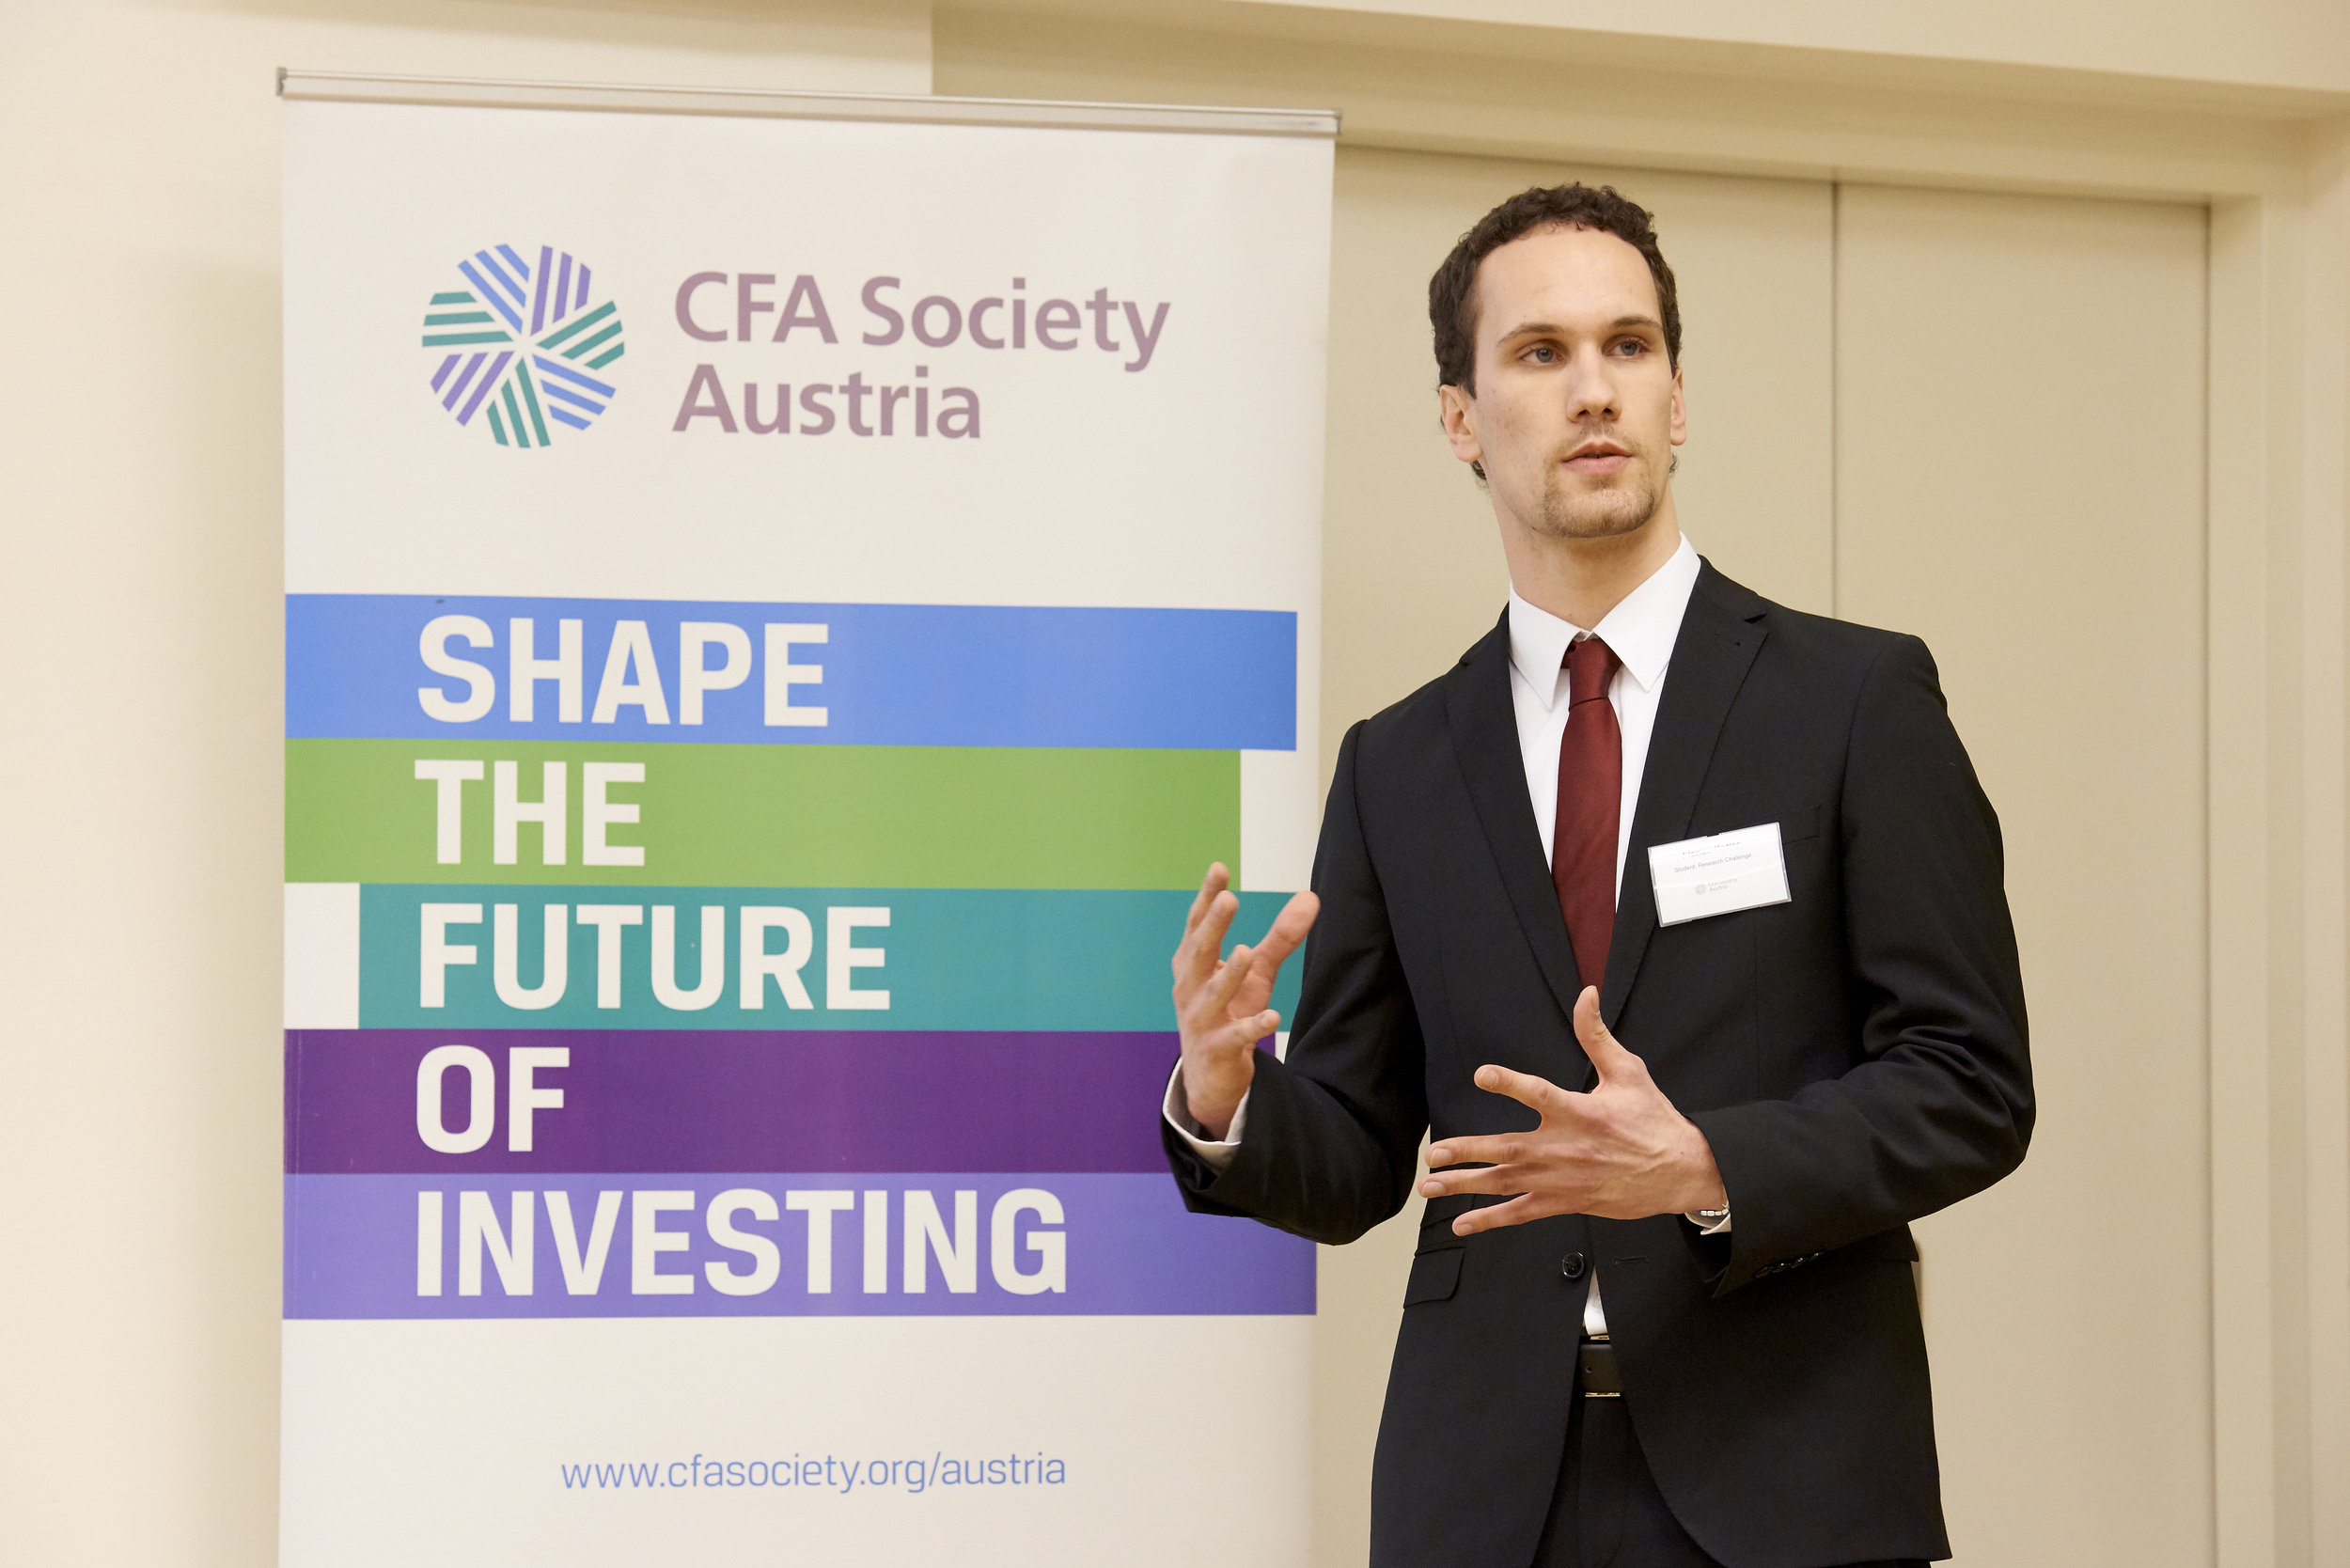 Join us on Facebook - Join us on the CFA Society Austria Facebook page for news, updates and photos from our events.